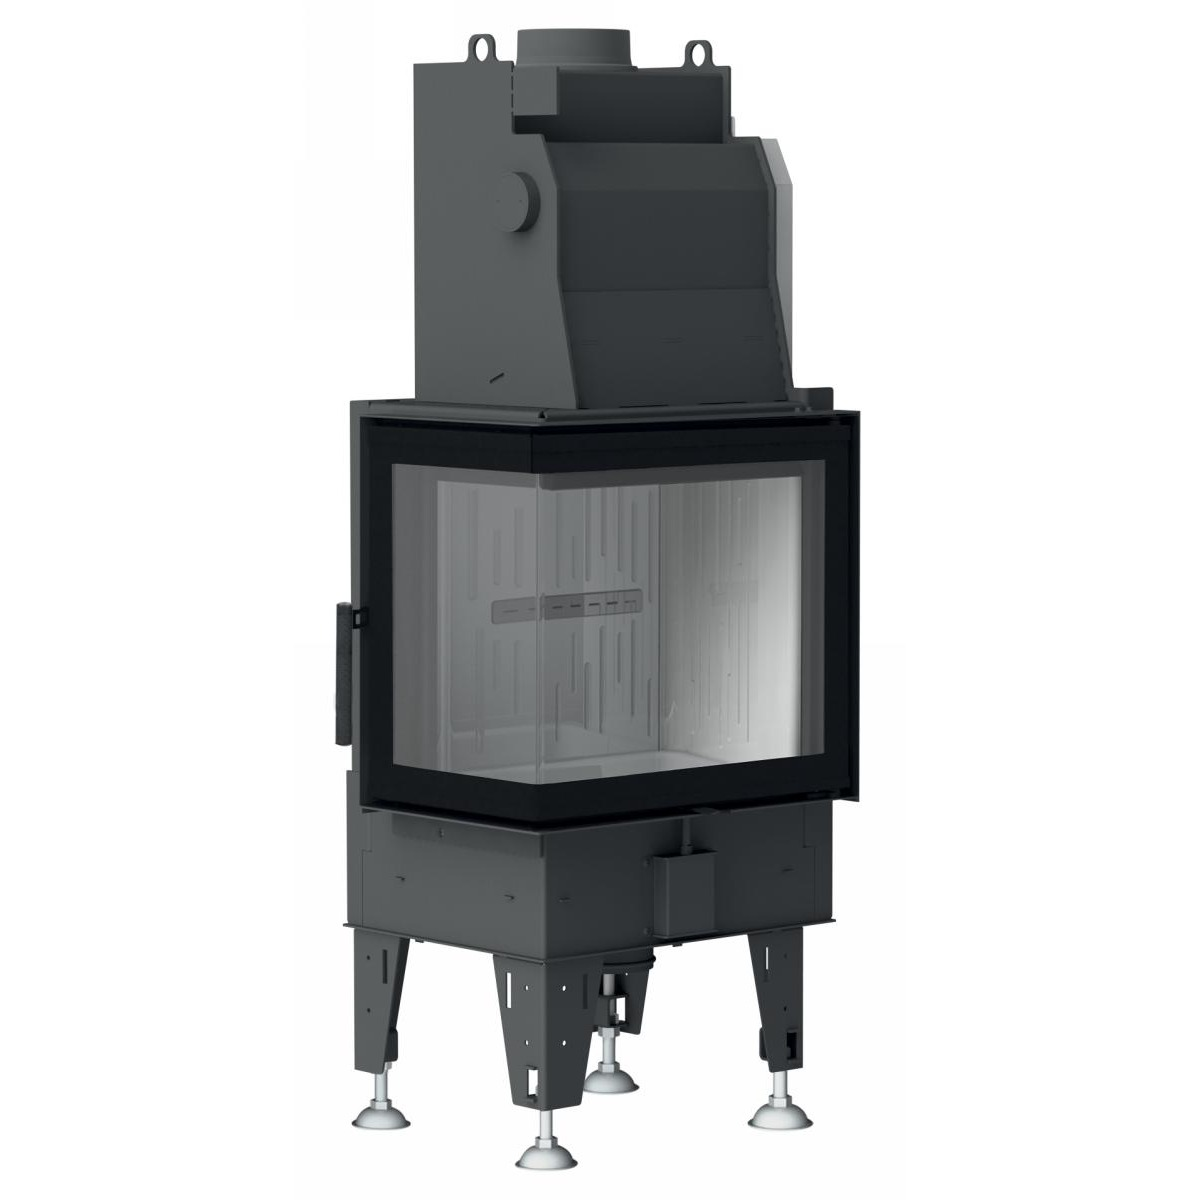 BeF Aquatic WH 65 CL boiler fireplace insert